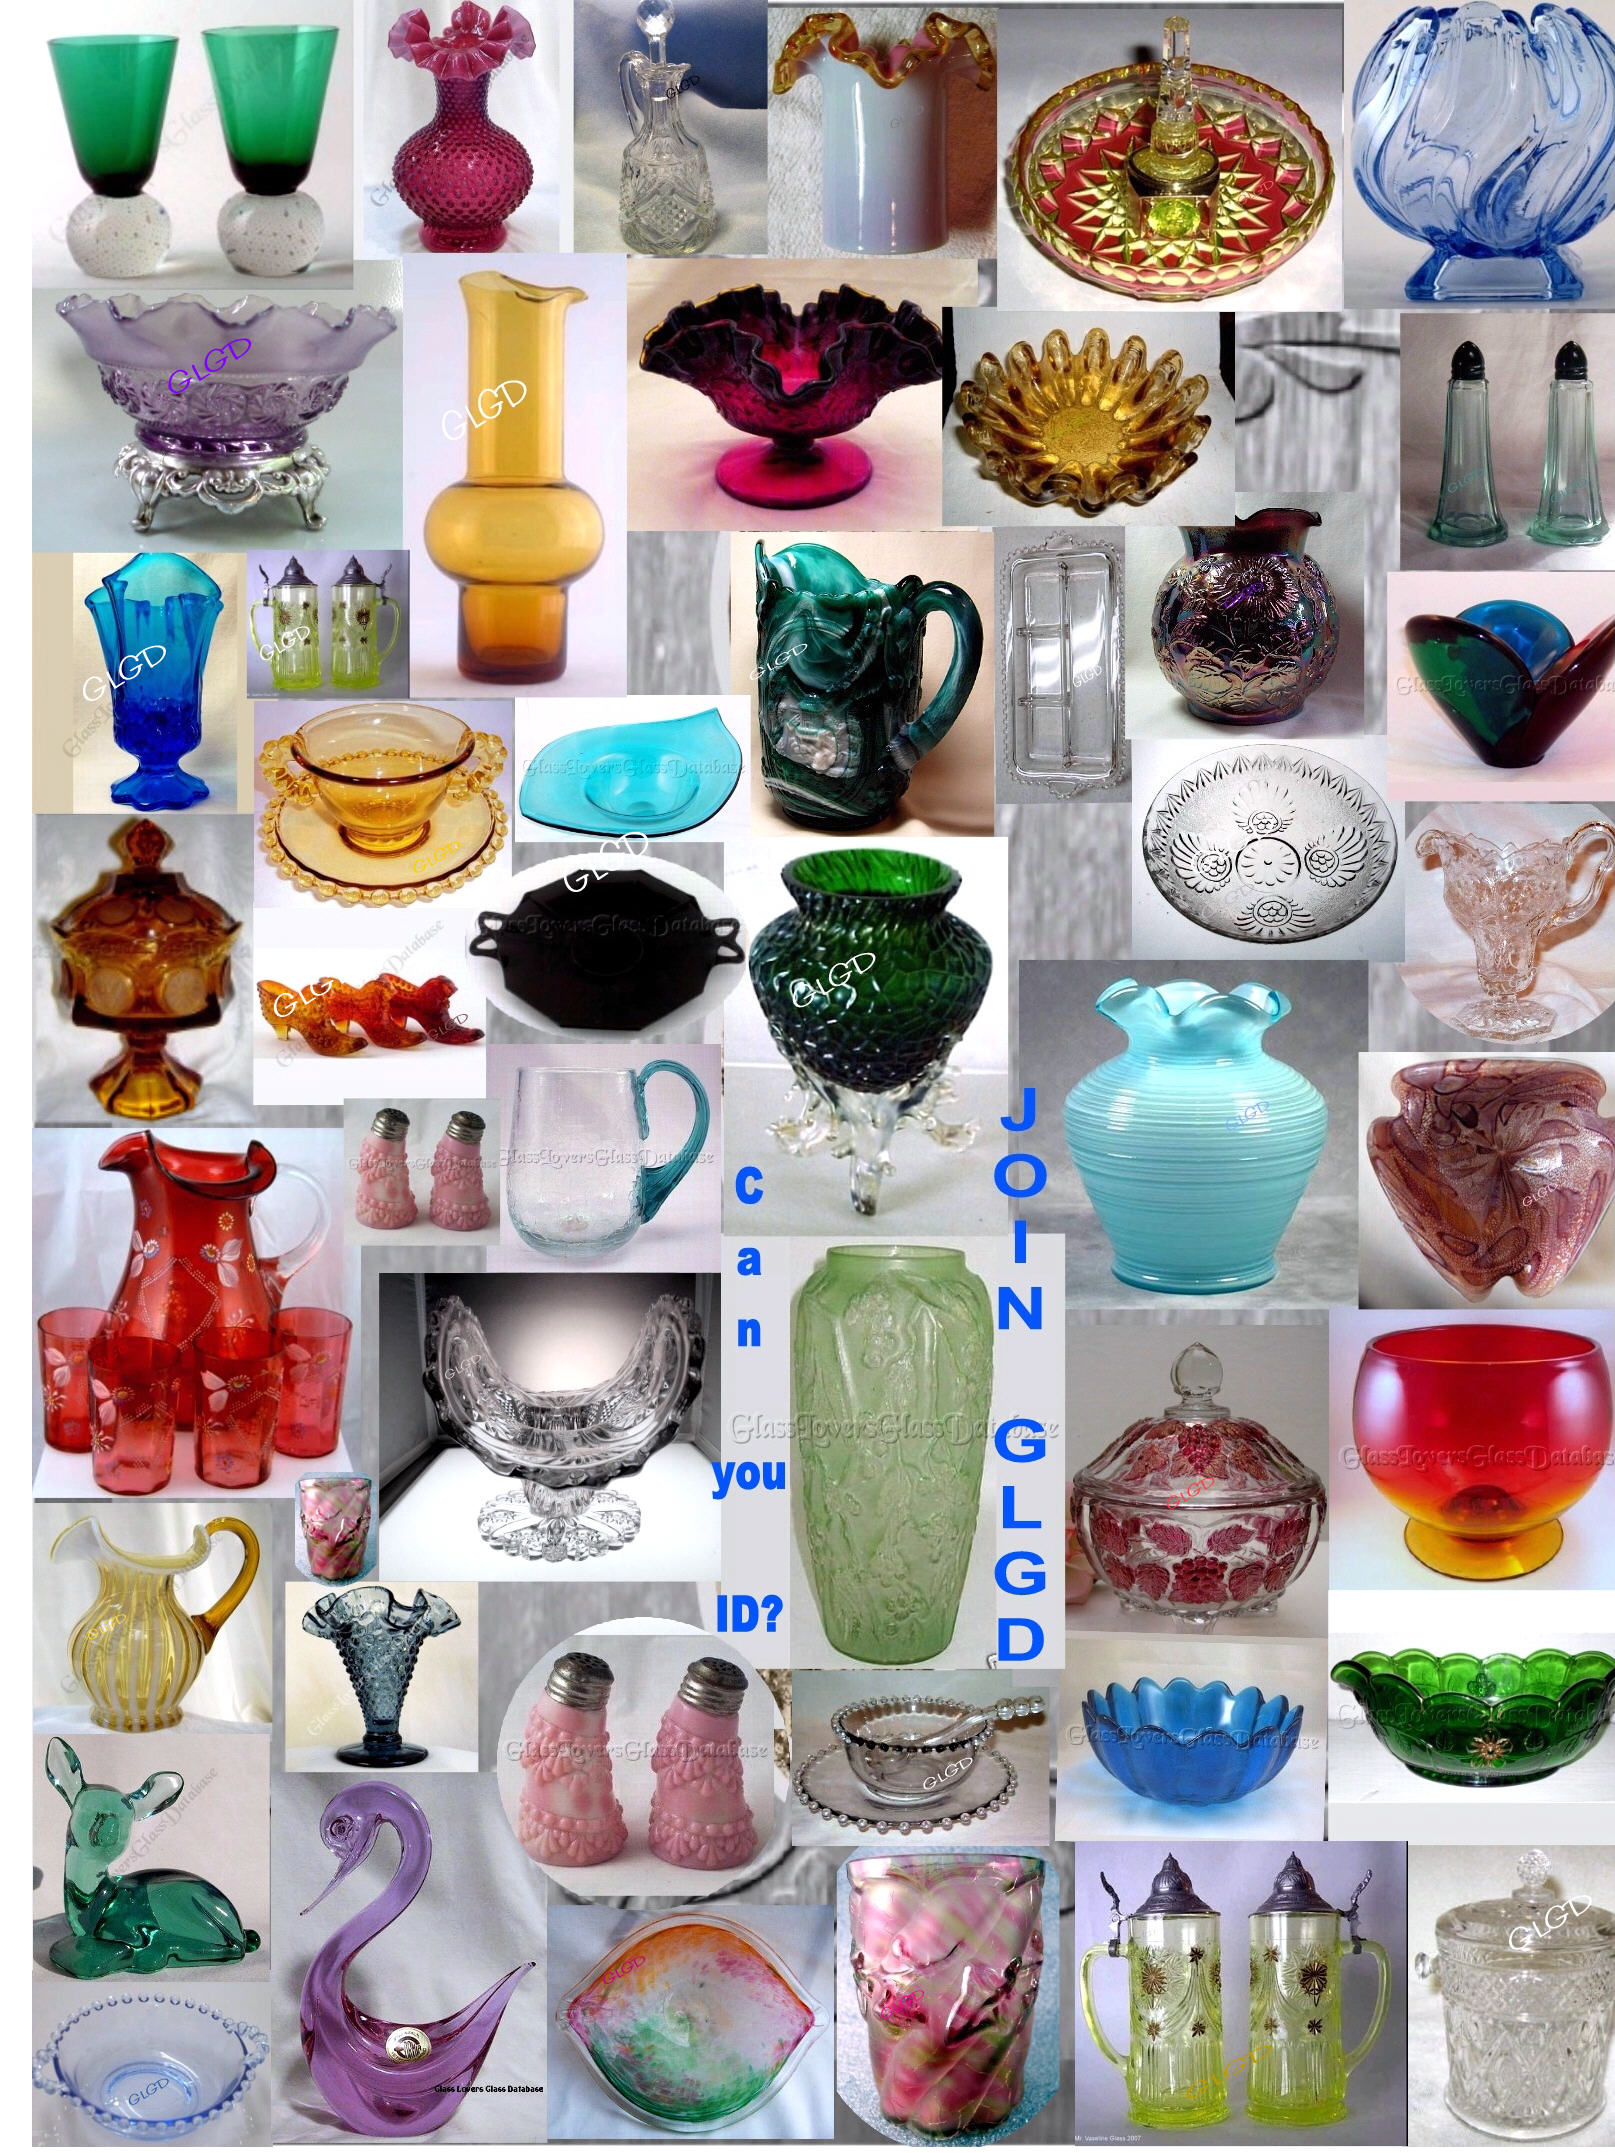 Cambridge Glass Company